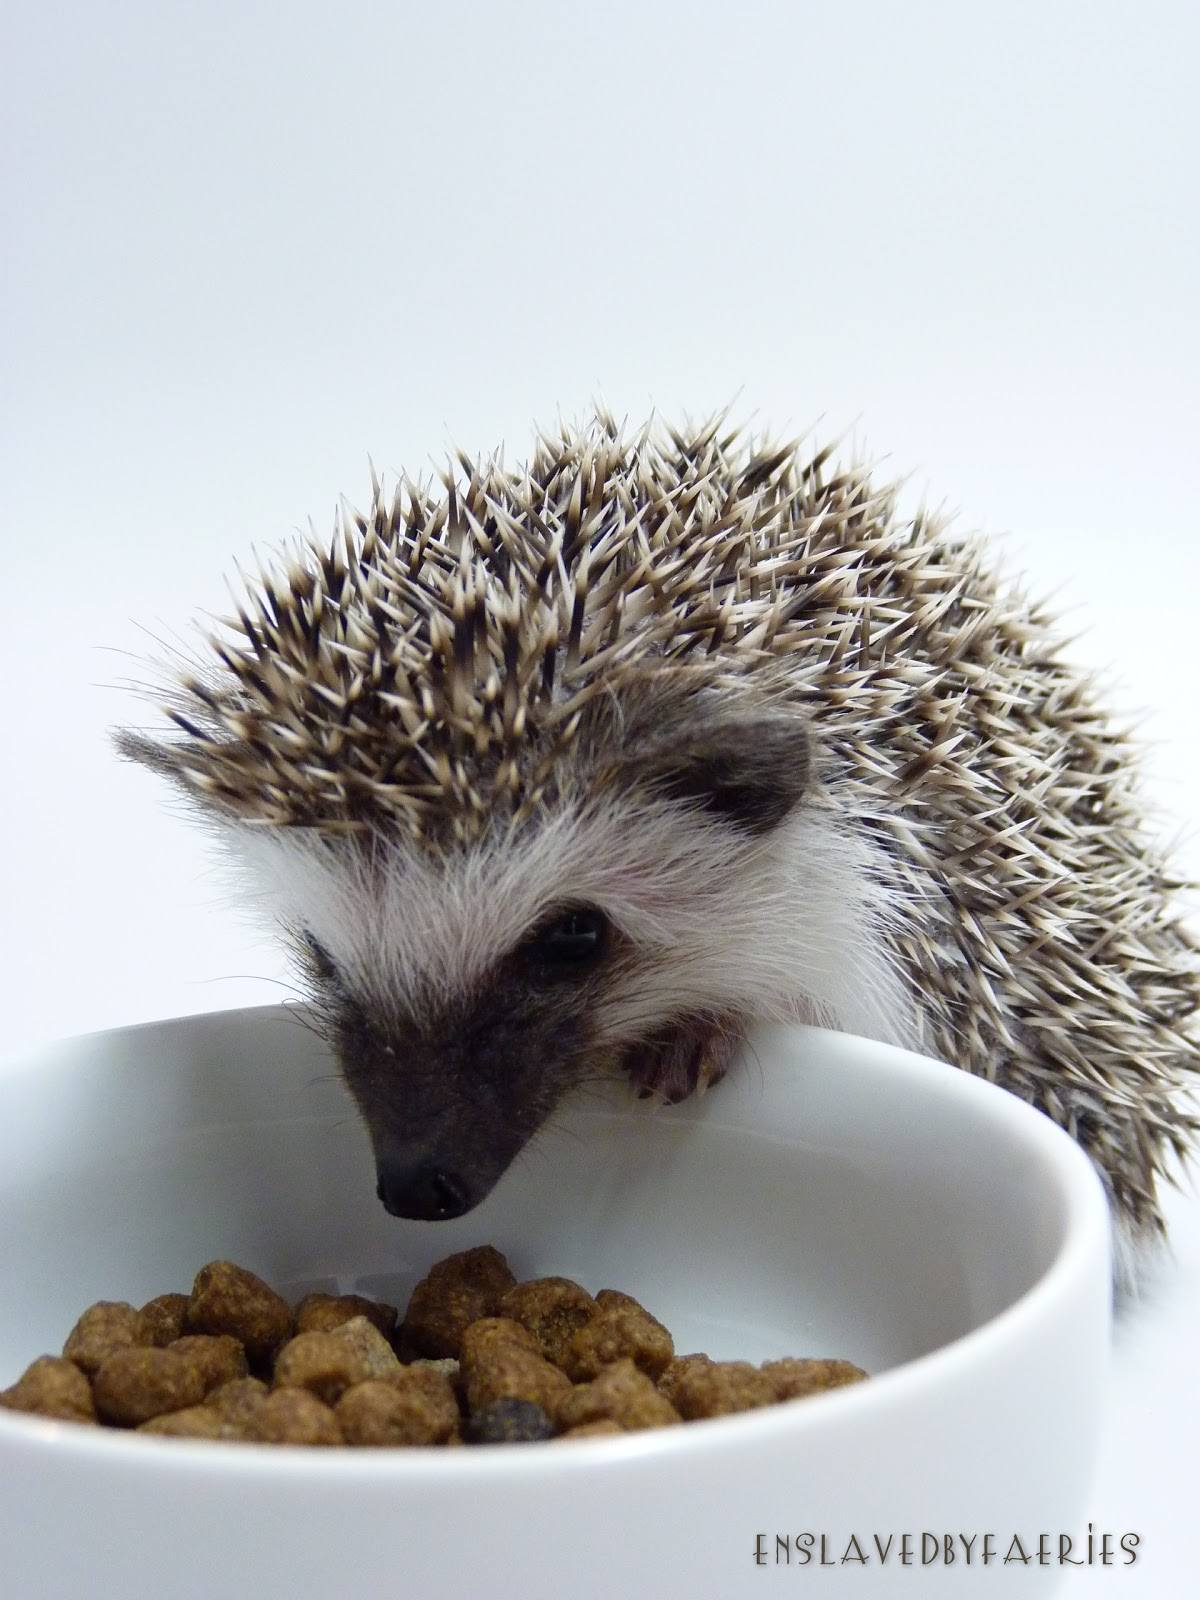 What do wild hedgehogs eat?